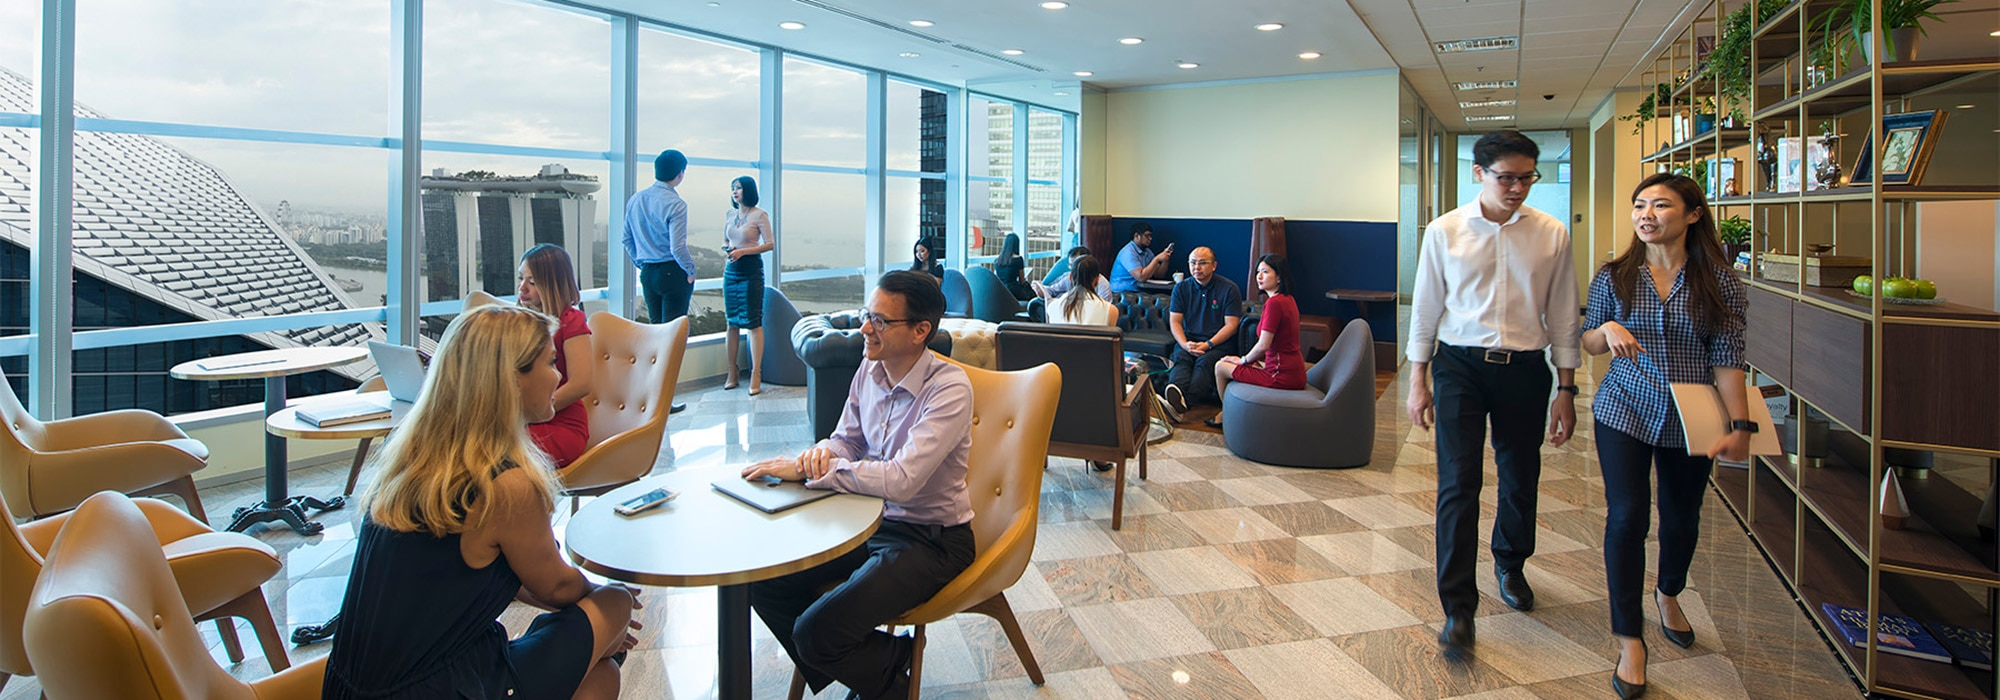 marina-bay-financial-centre-coworking-2000x700.jpg